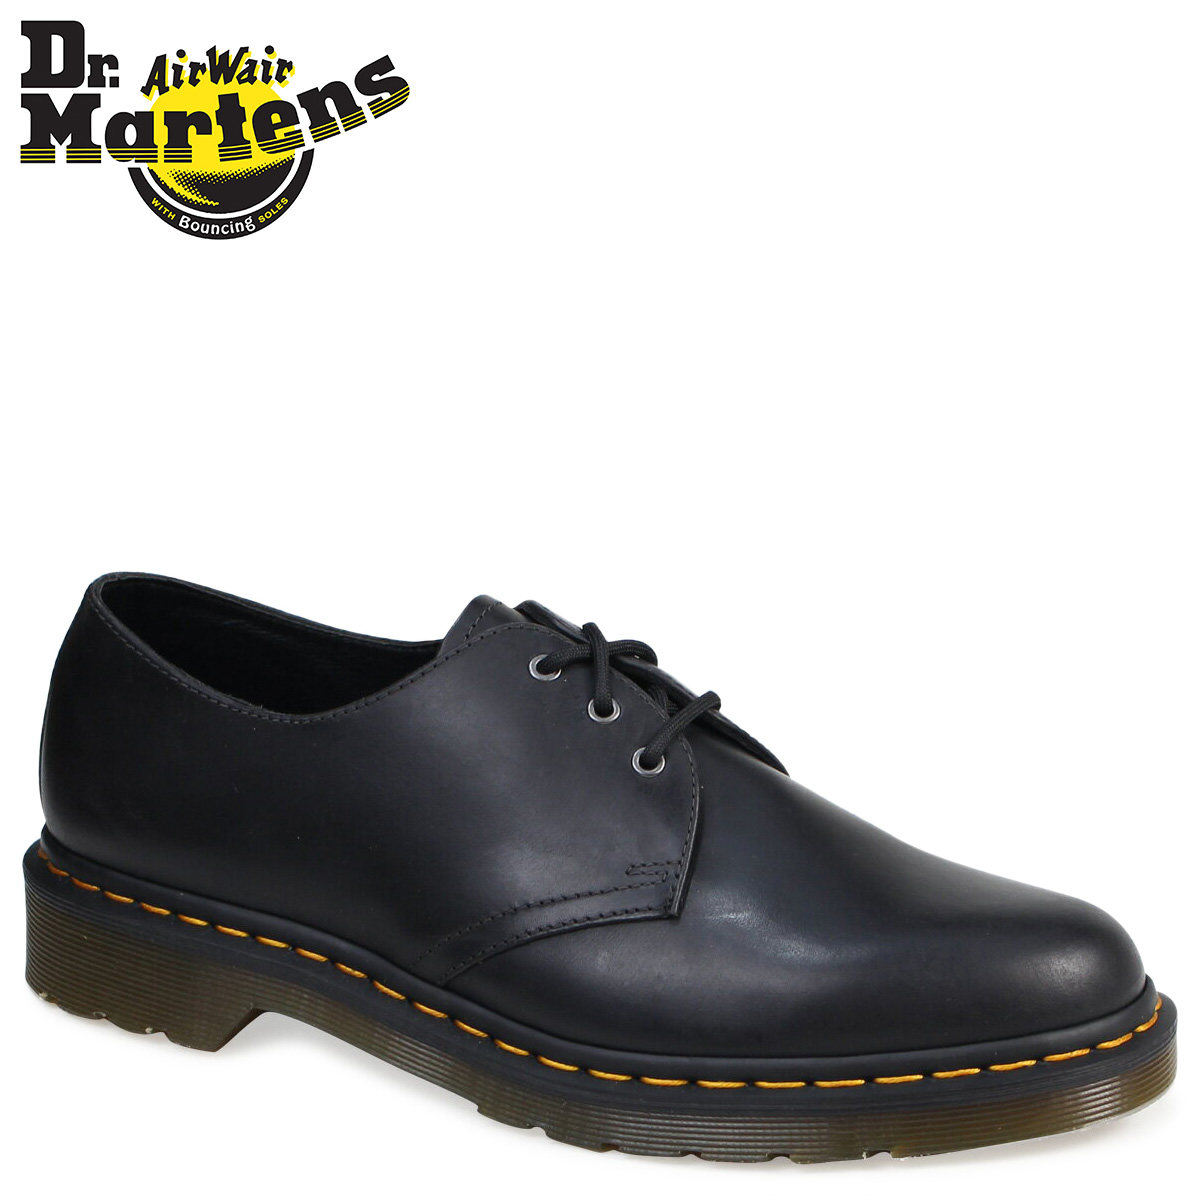 11b1a6532ebe ALLSPORTS  Dr.Martens 3 hall 1461 men s doctor Martin shoes CORE ...